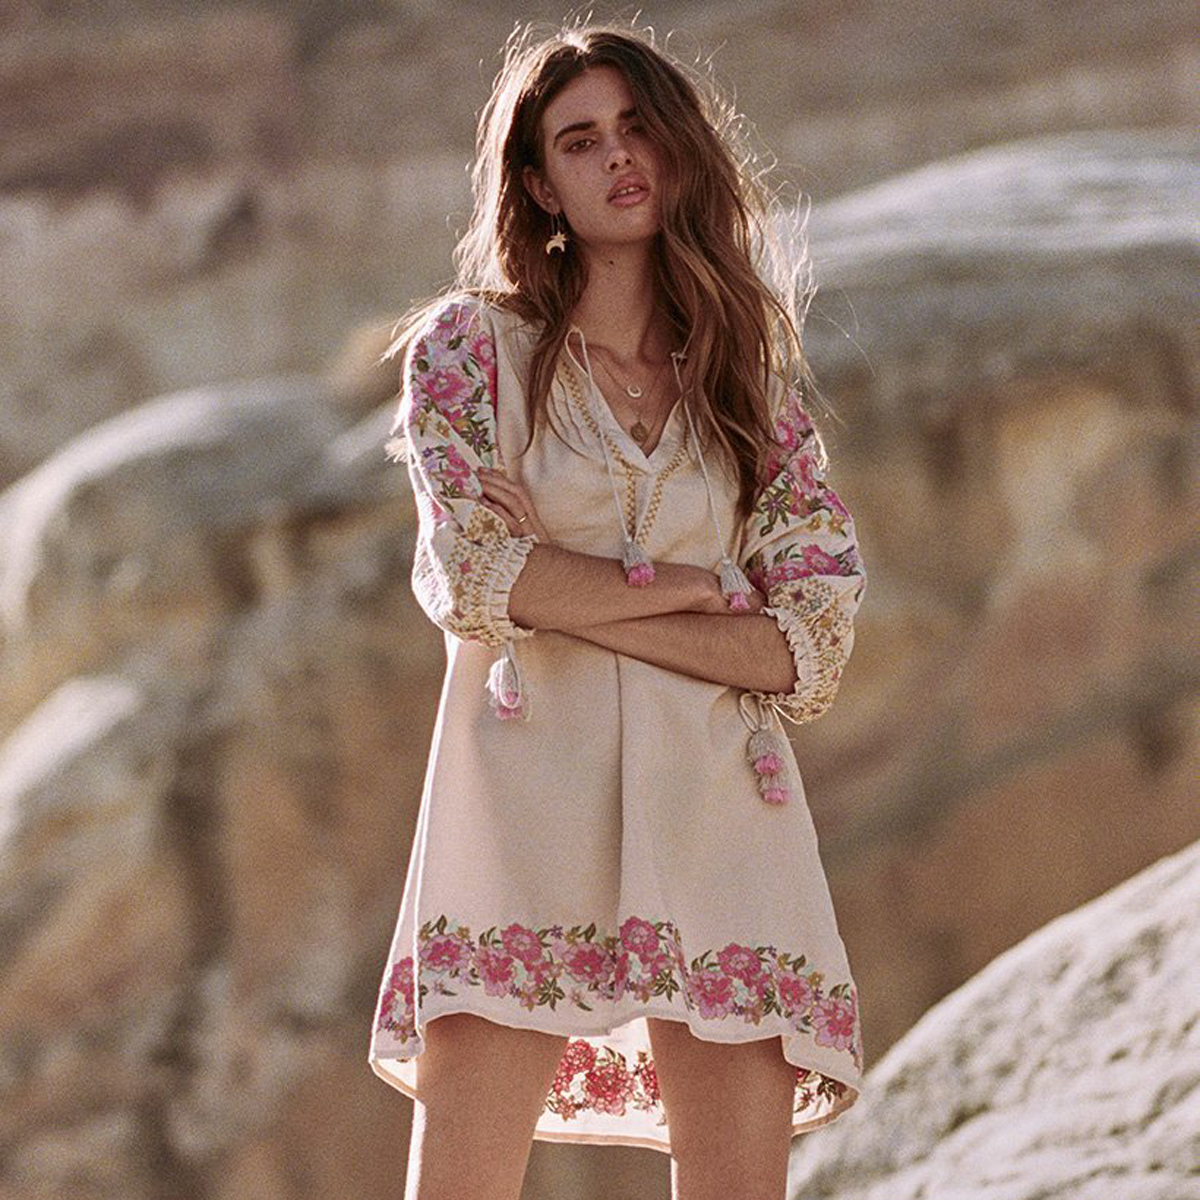 Gypsy Sexy Hippie Mini Robe Femmes 2018 Été Automne 3/4 Manches V cou Chemise Robes Dames Boho Floral Broderie Court robe